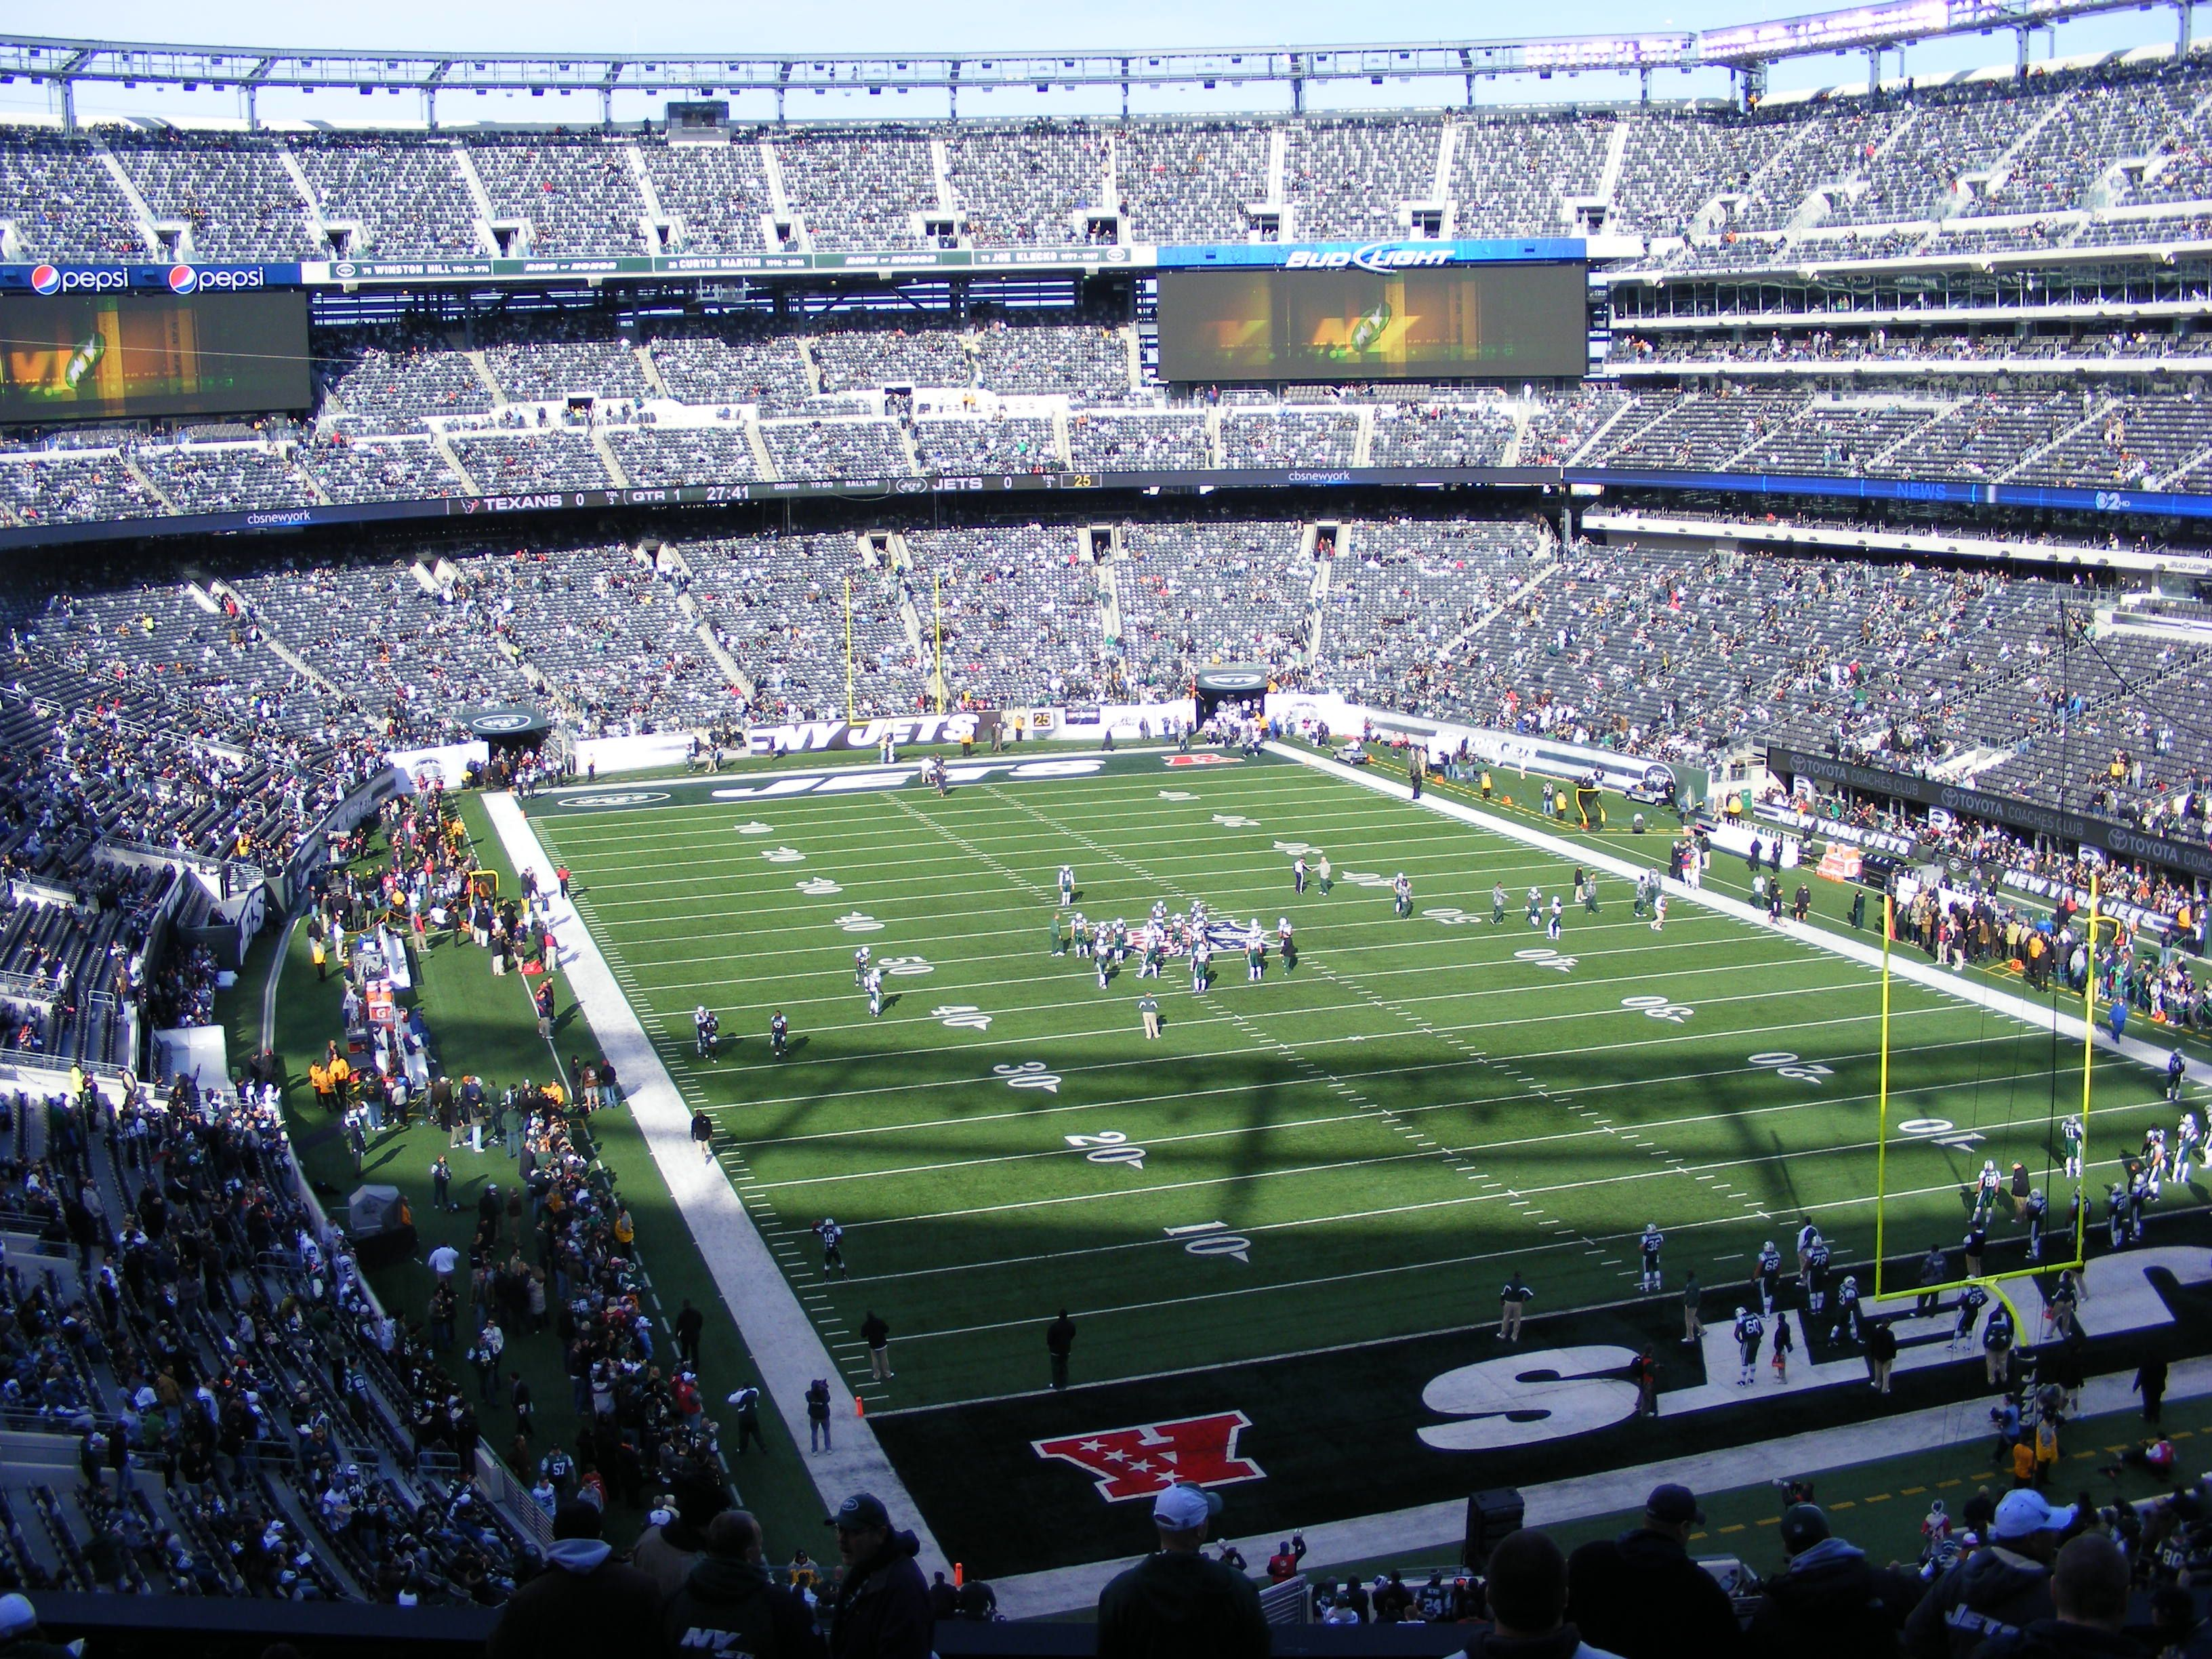 3e5d1eb172d The MetLife stadium, home of the New York Jets | Image source:  Thesportsroadtrip.com